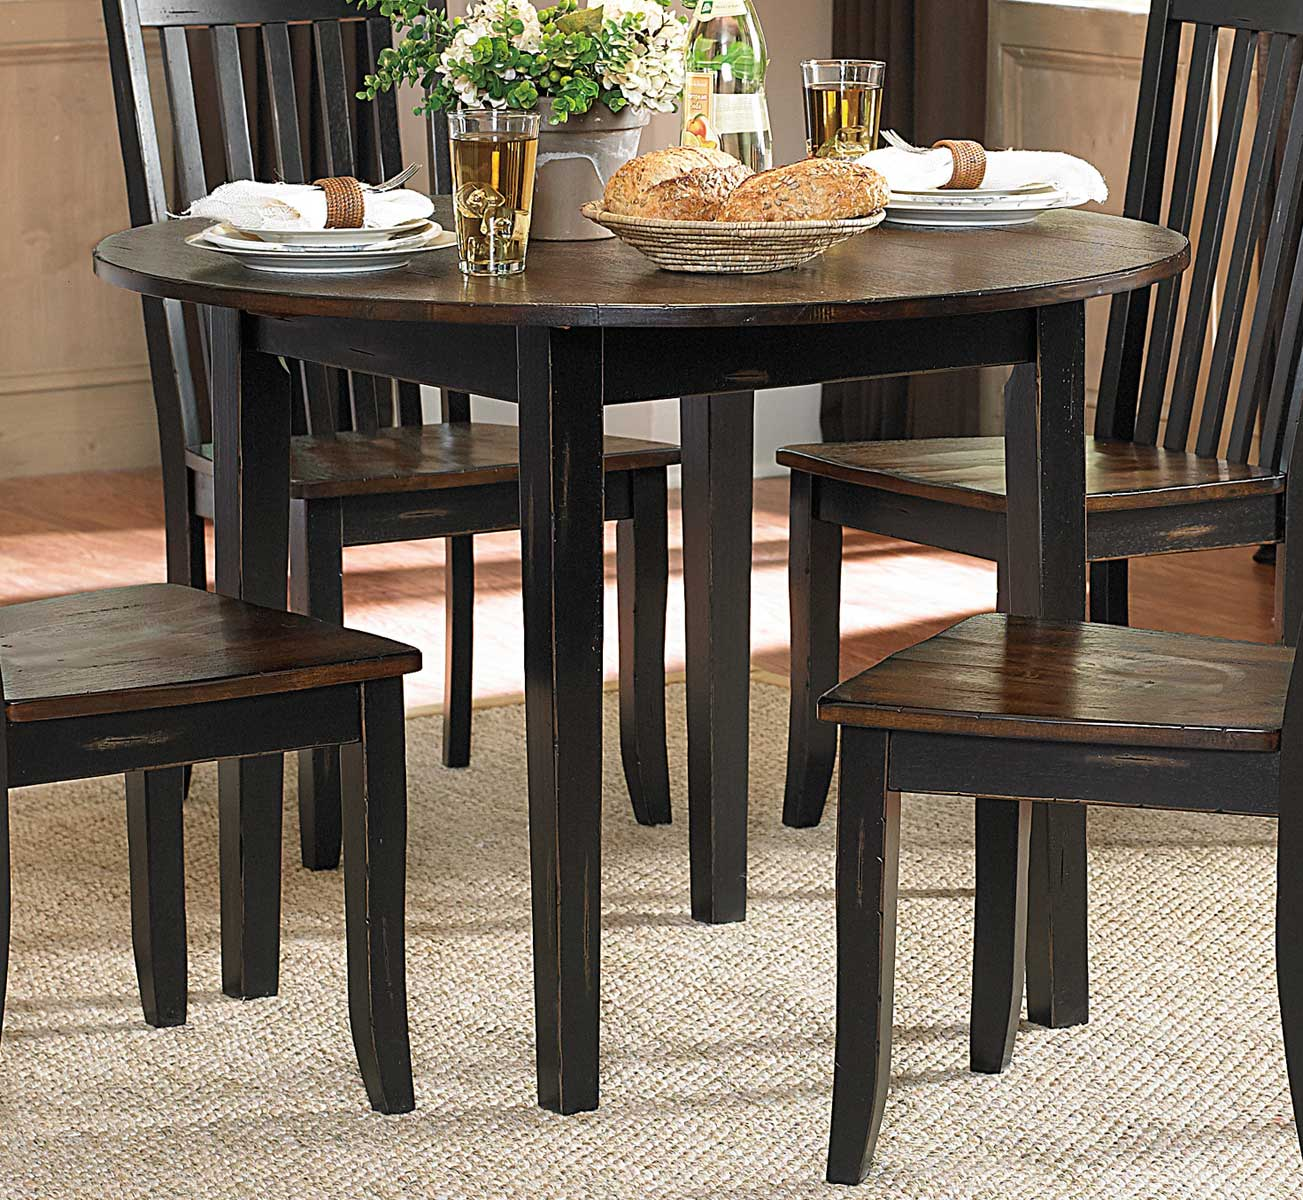 Homelegance Three Falls Round Dining Table With Drop Leaf Two Tone Dark Brown Black